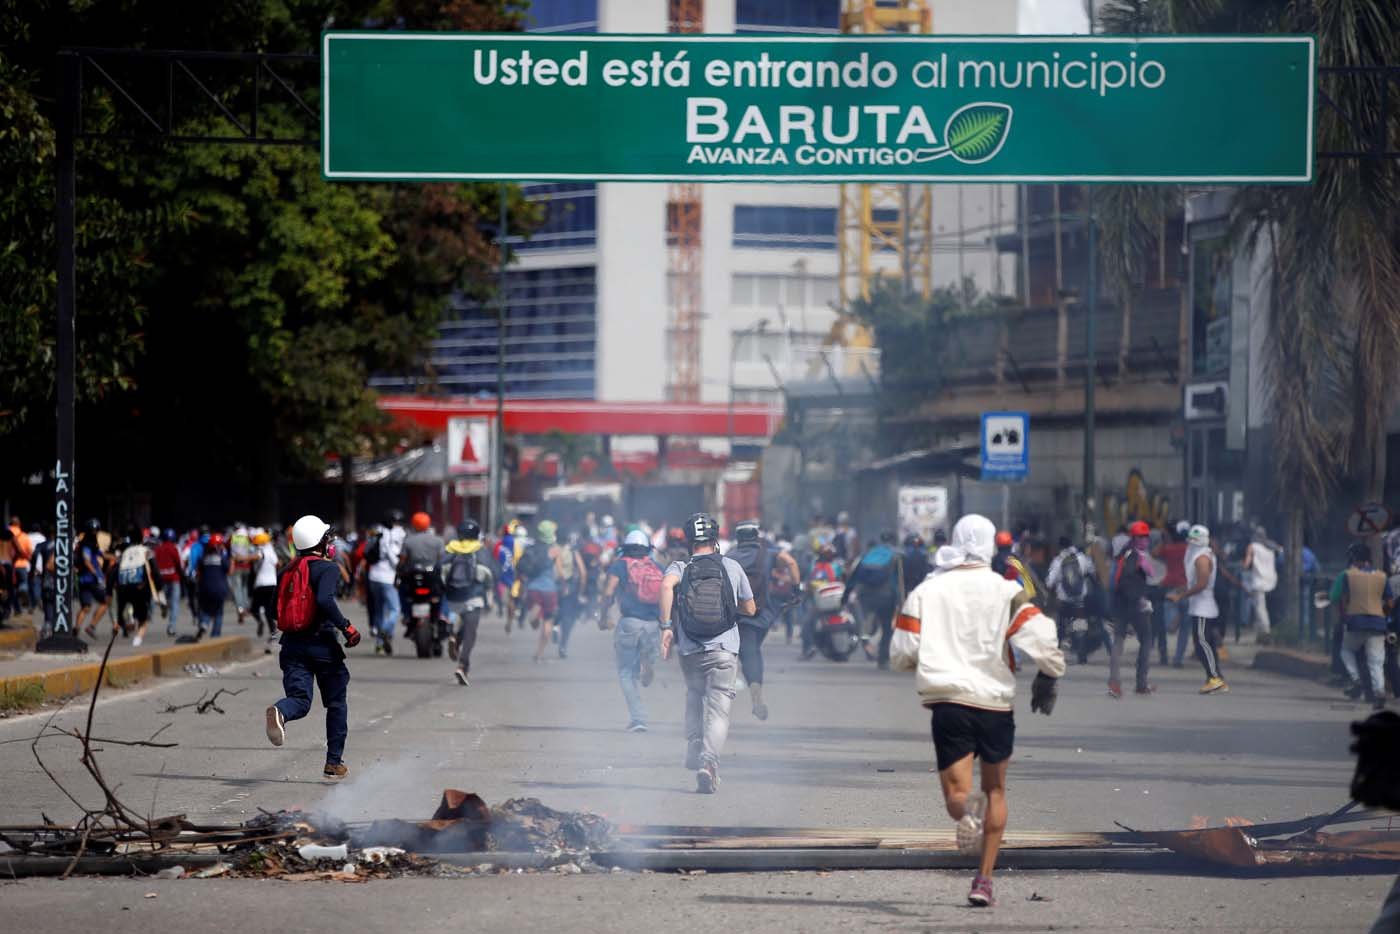 Demonstrators run past a barricade during clashes at a rally against Venezuelan President Nicolas Maduro's government in Caracas, Venezuela, July 6, 2017. REUTERS/Andres Martinez Casares